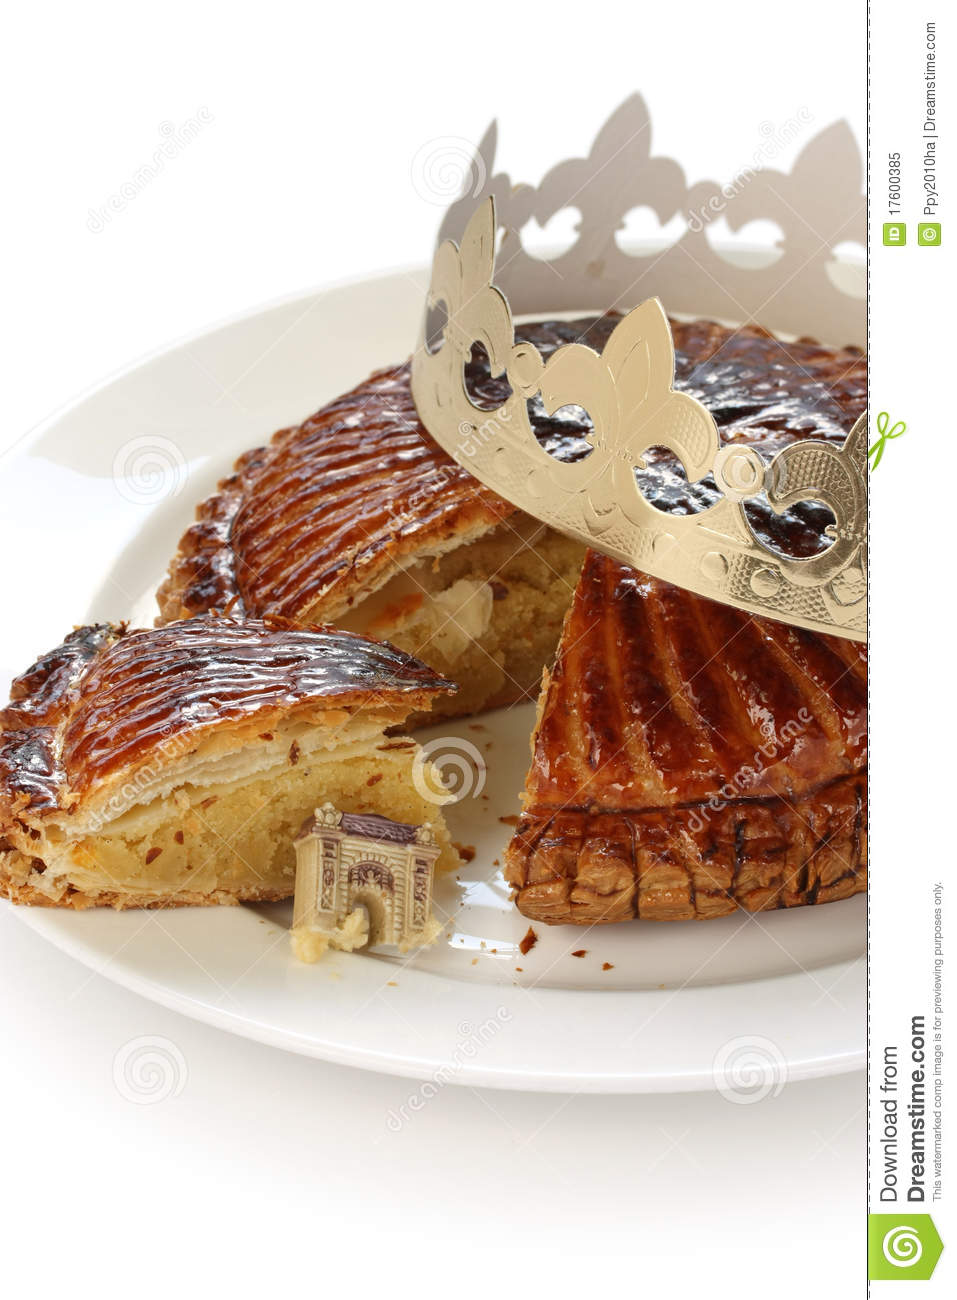 Galette Des Rois  King Cake Royalty Free Stock Photo   Image